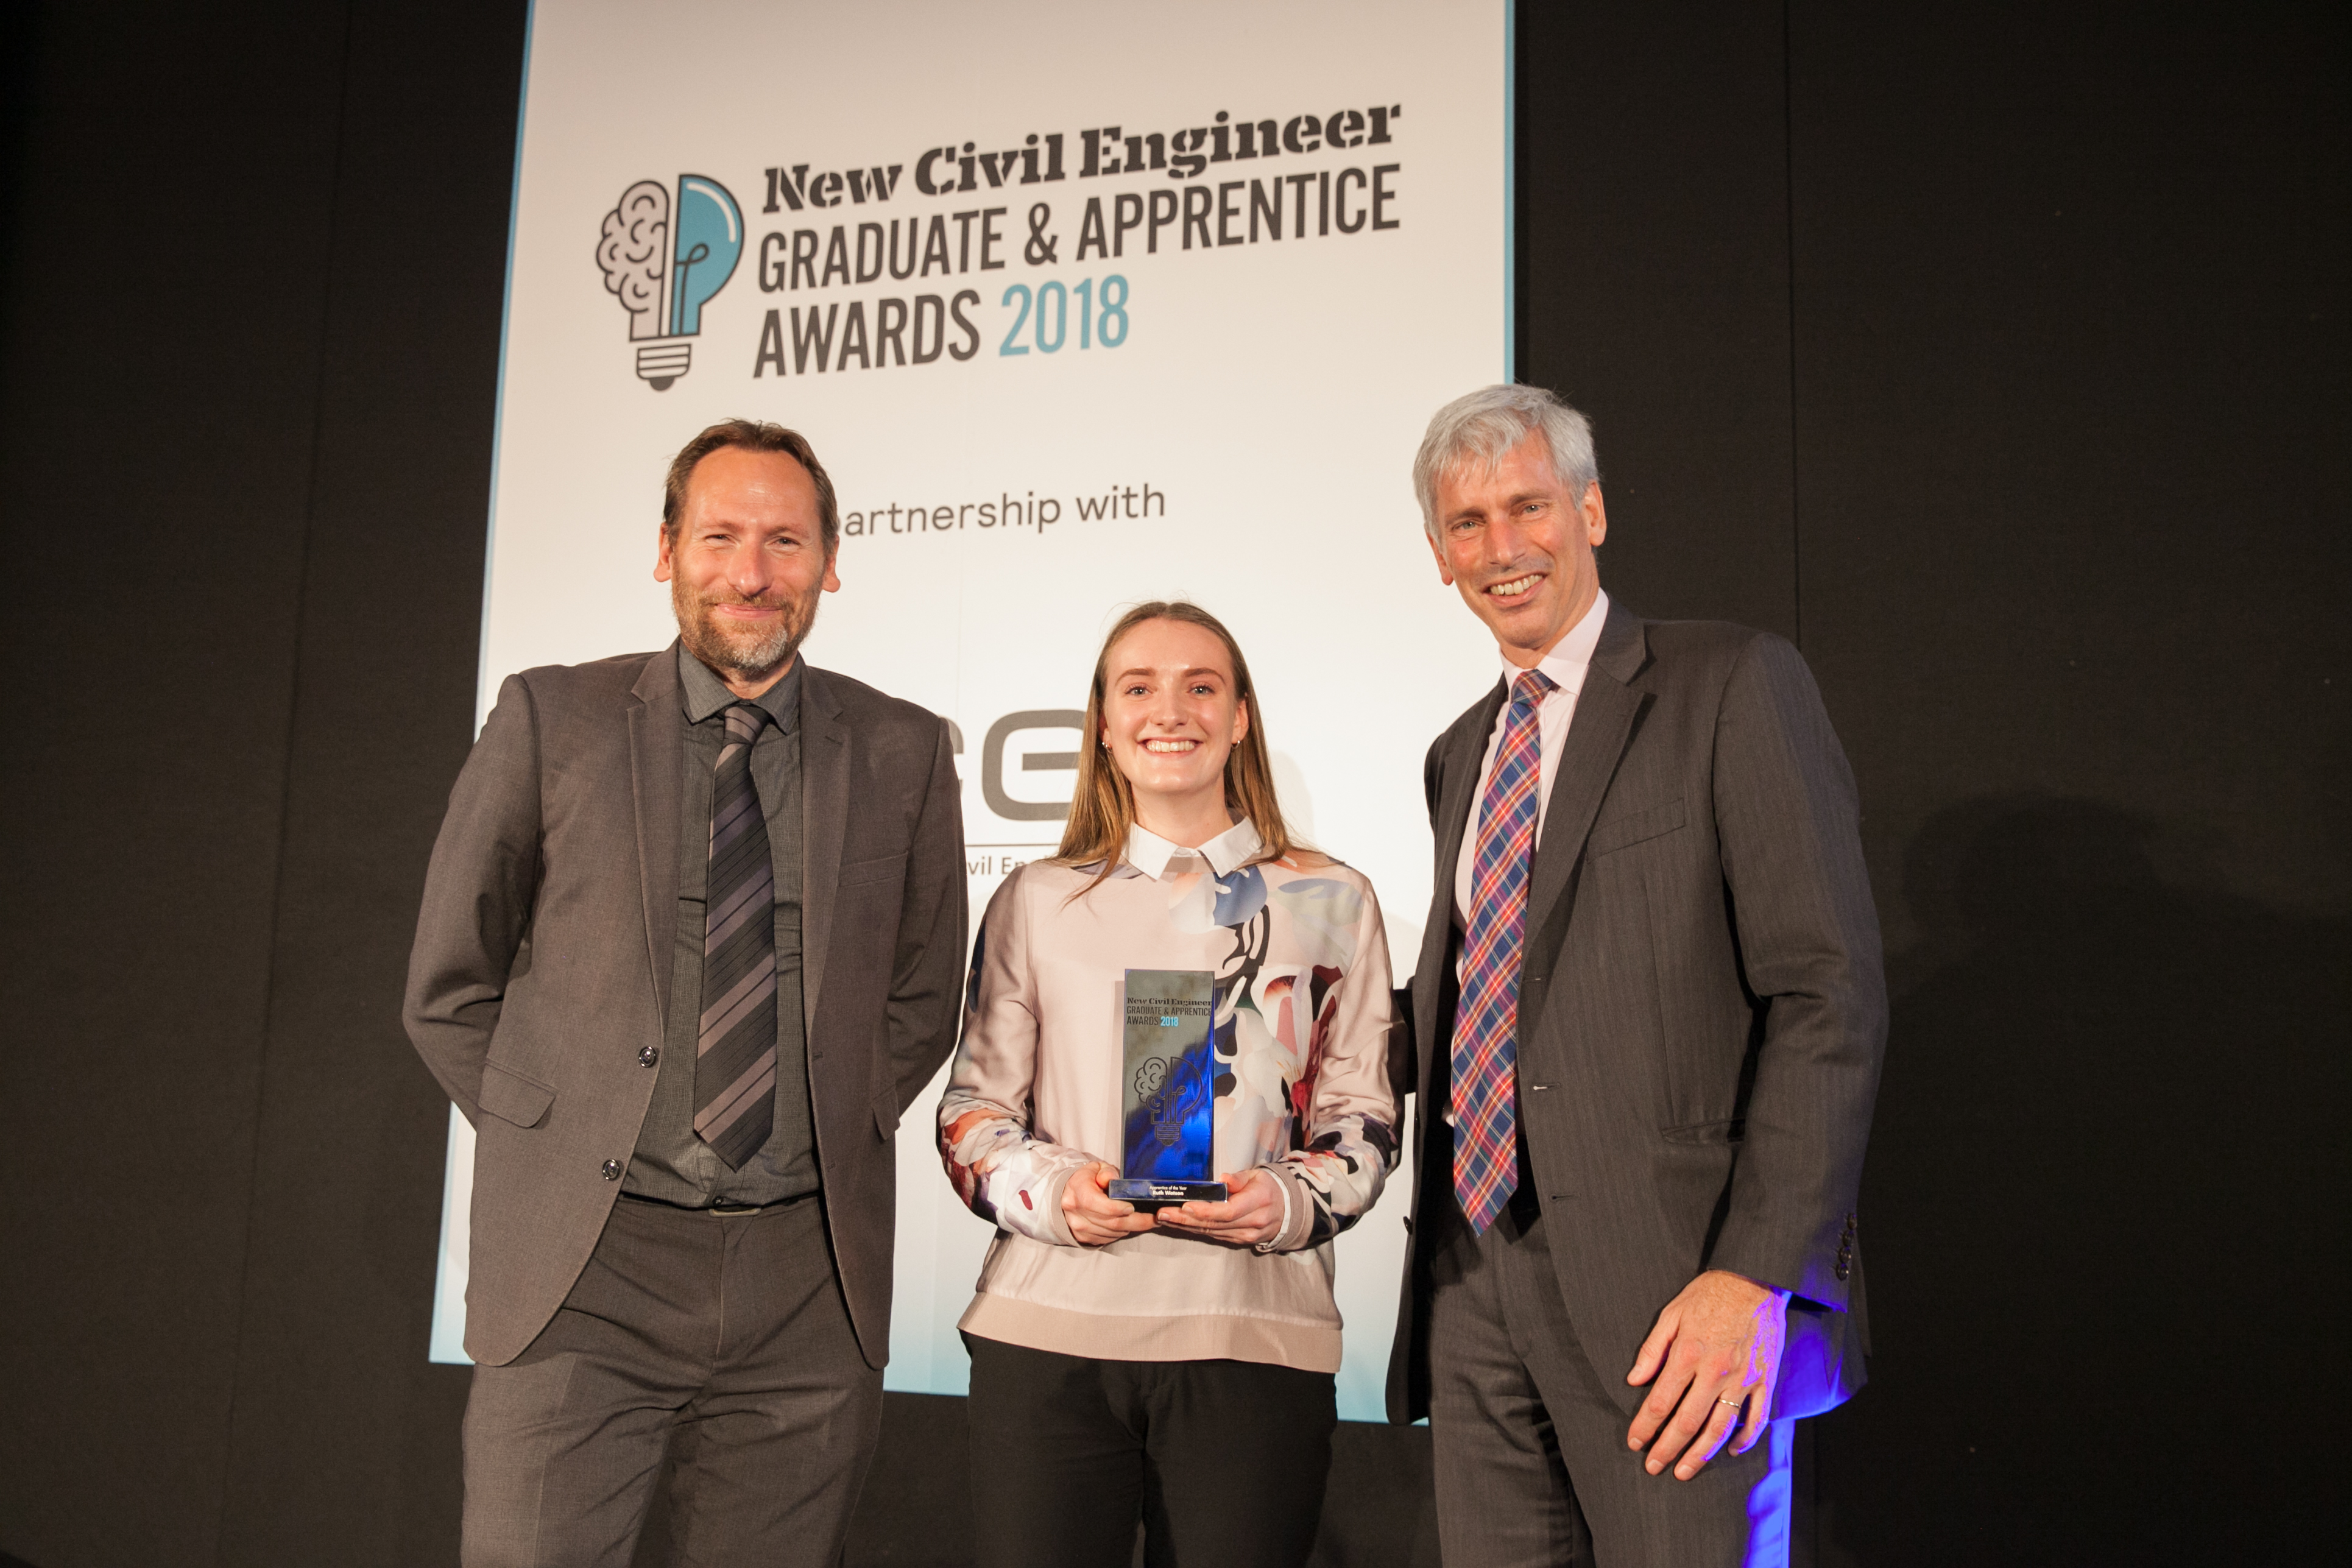 Ruth collecting her award